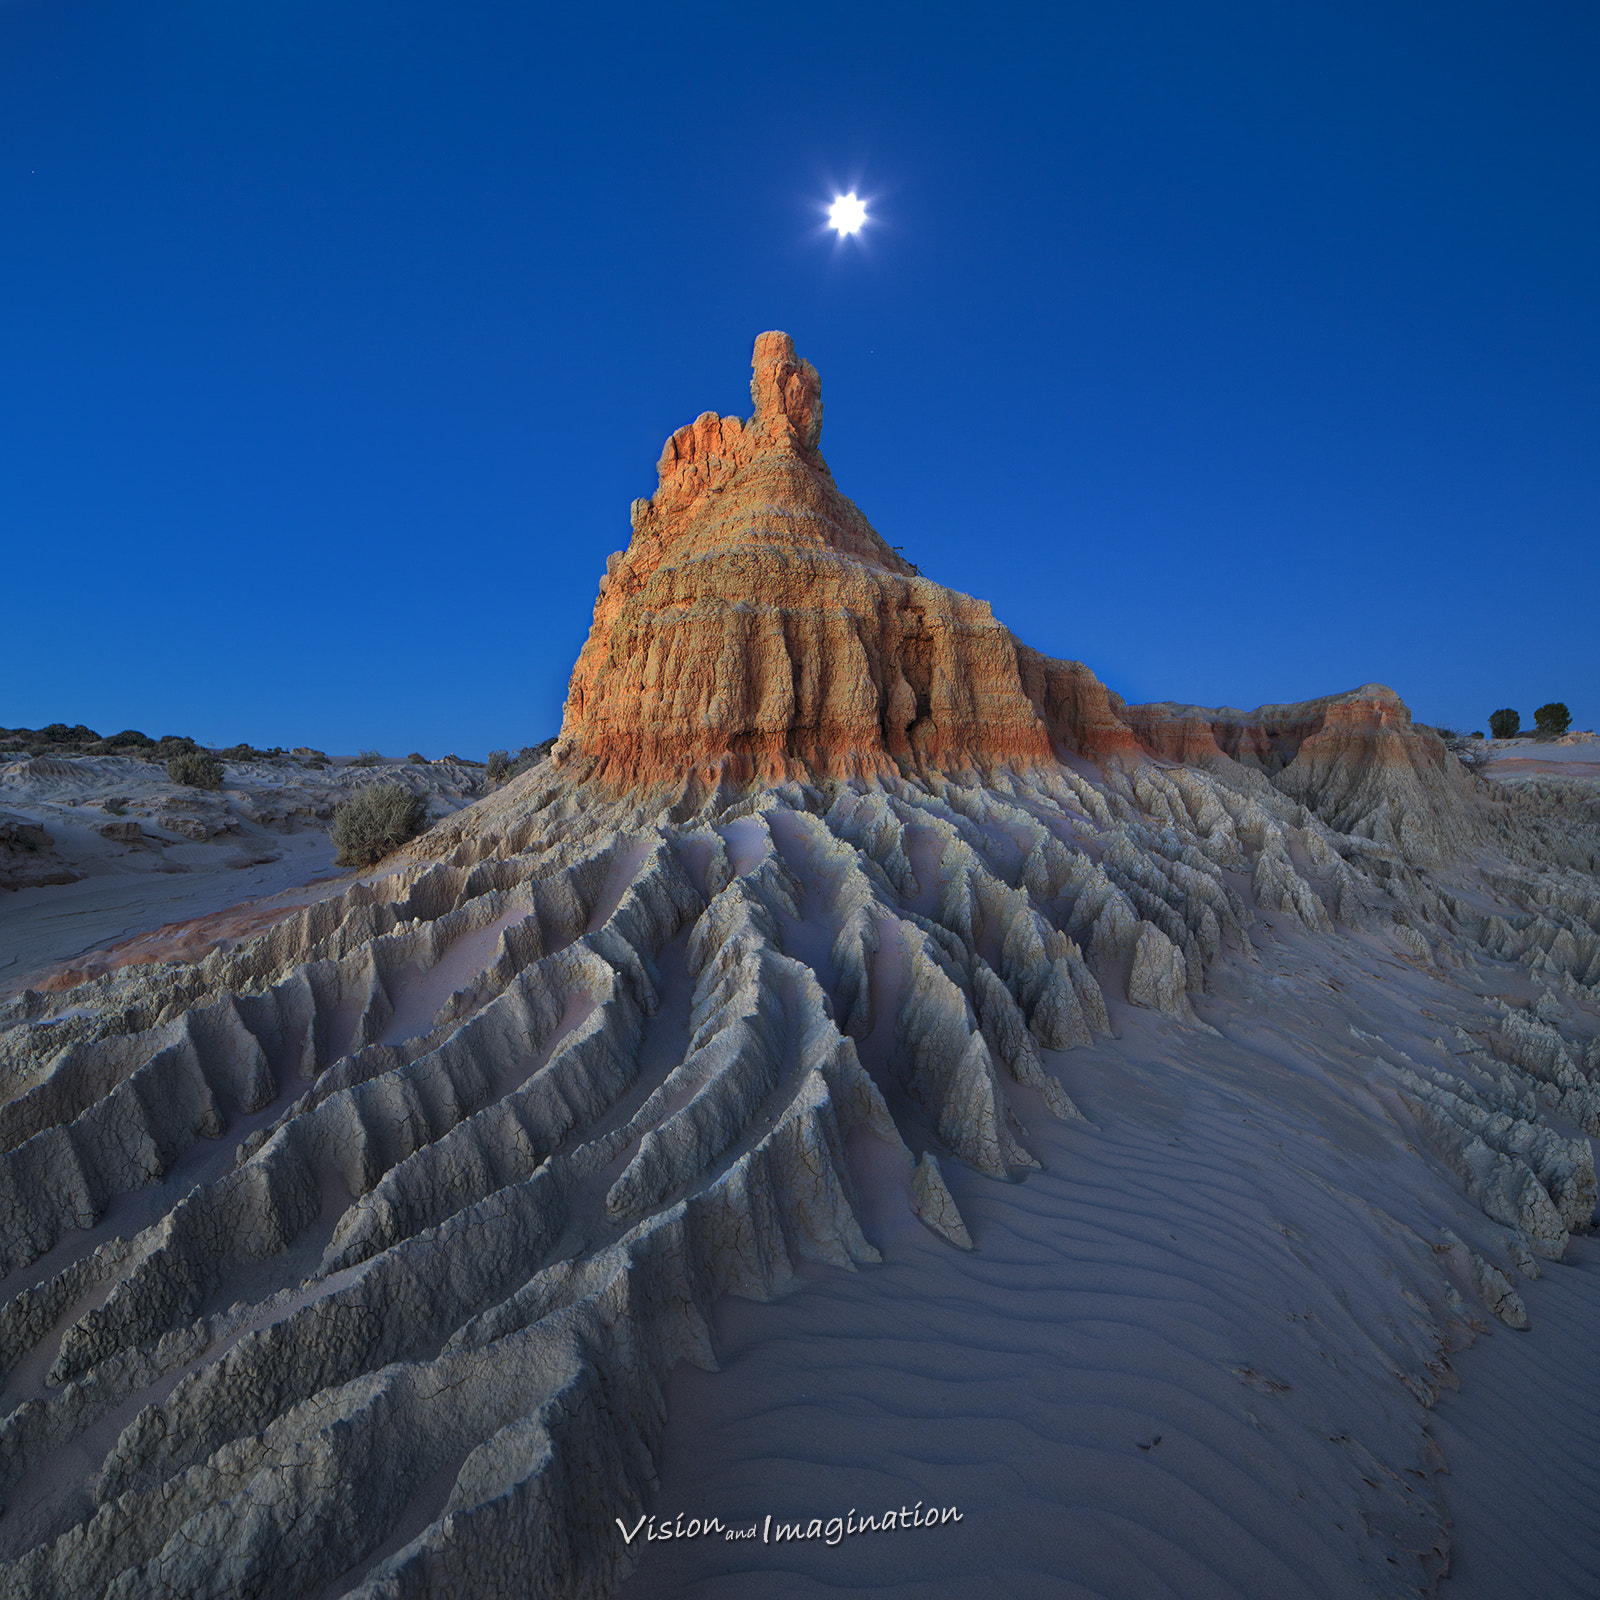 Photograph Ancient erosion by Garry Schlatter on 500px